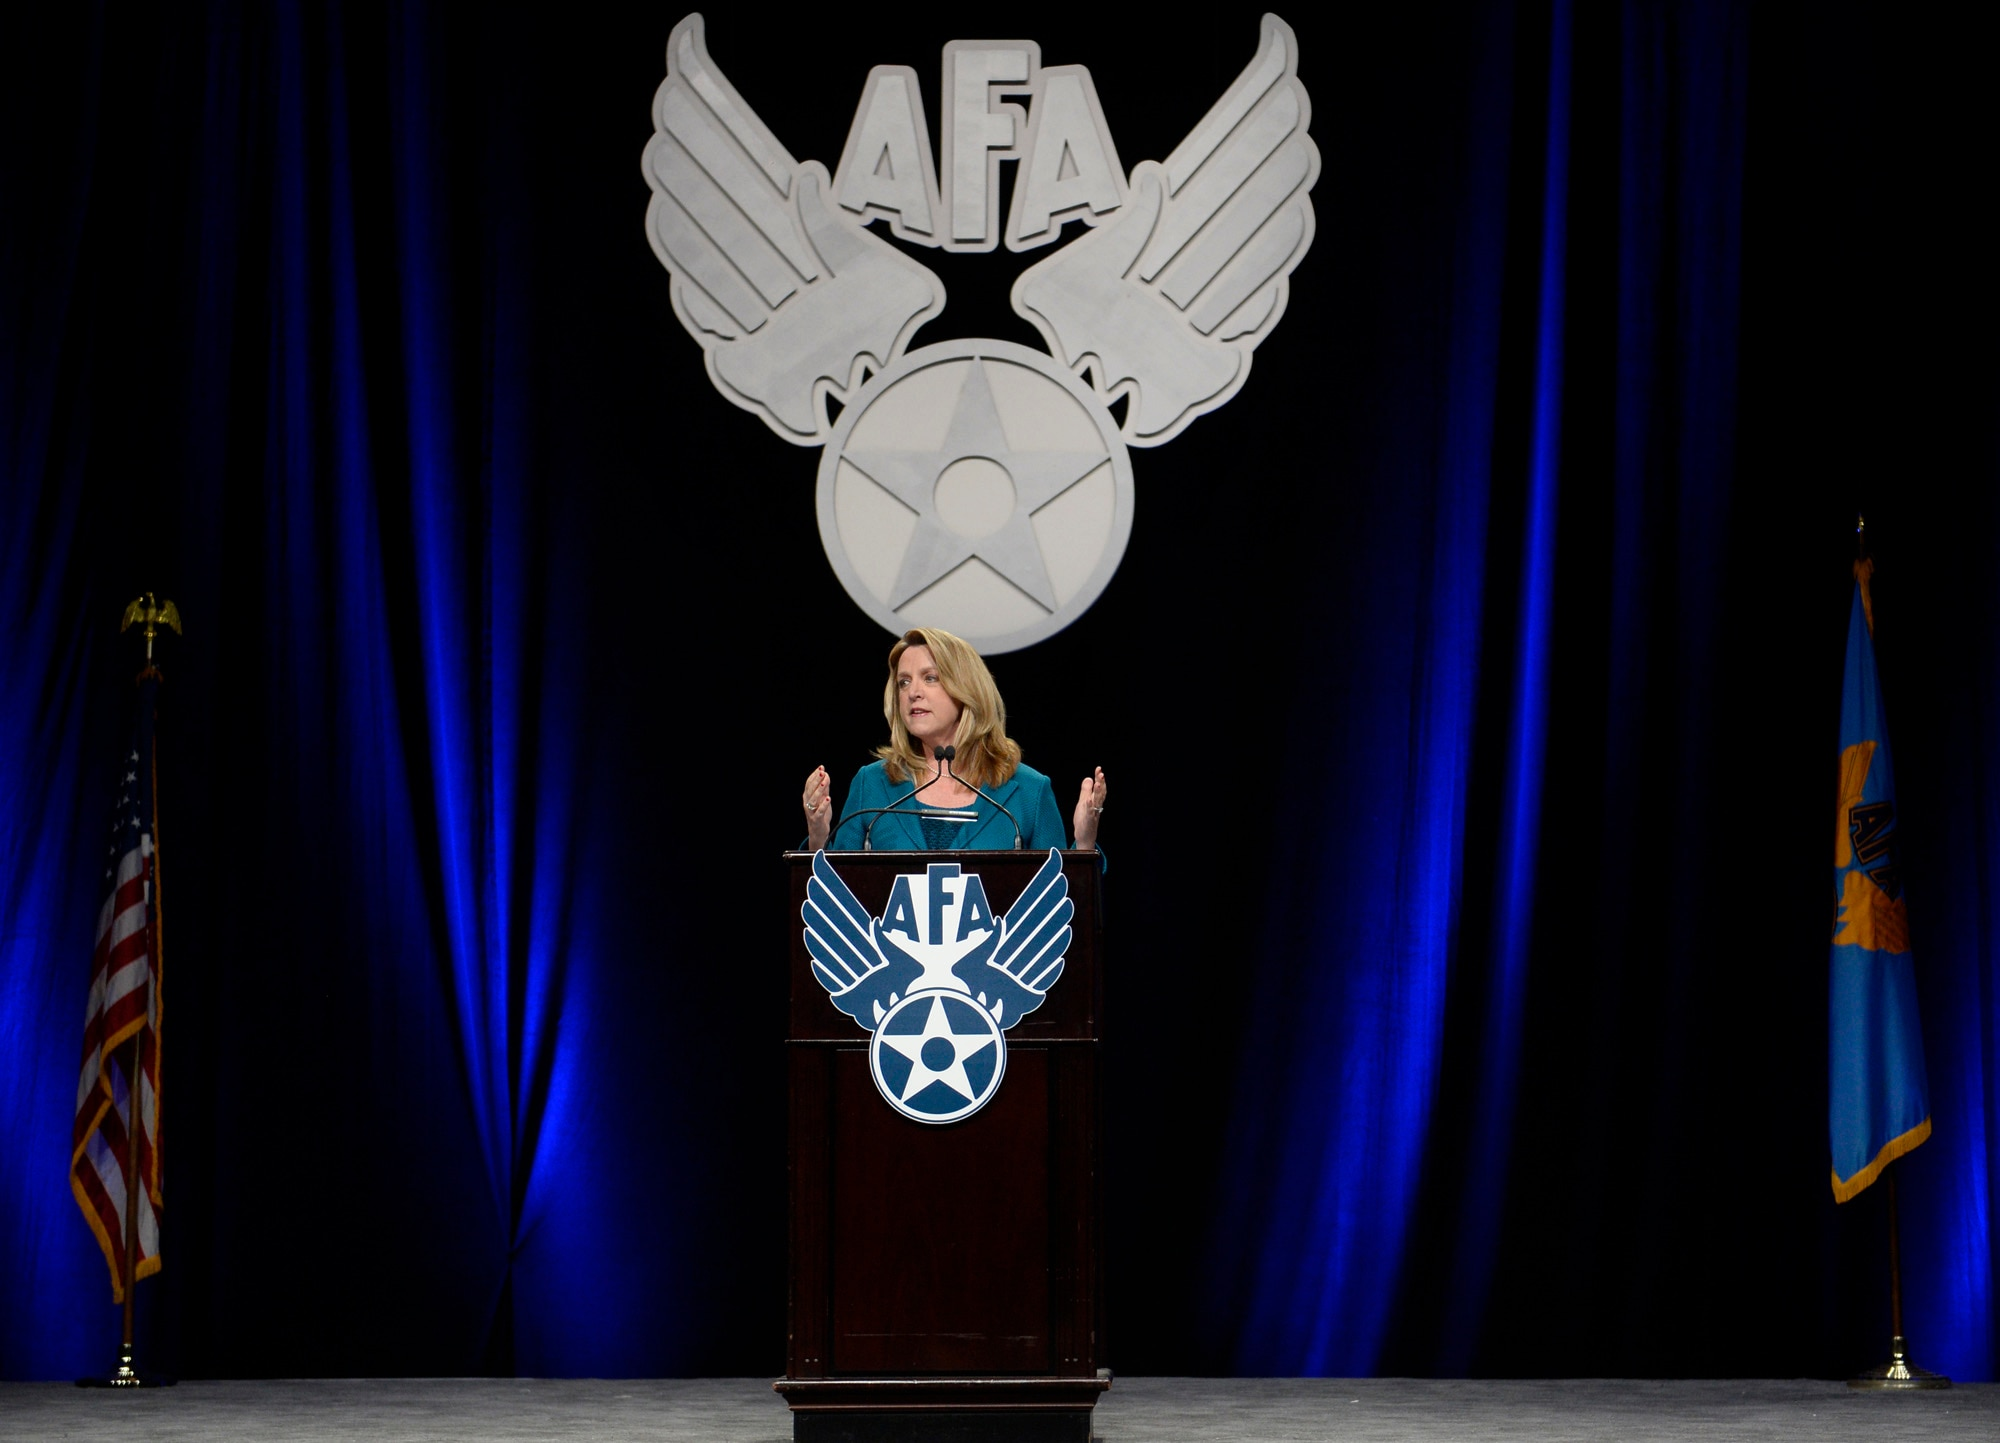 """Secretary of the Air Force Deborah Lee James gives her """"State of the Force"""" presentation during Air Force Association's Air Warfare Symposium in Orlando, Fla., Feb. 26, 2016. (U.S. Air Force photo/Scott M. Ash)"""